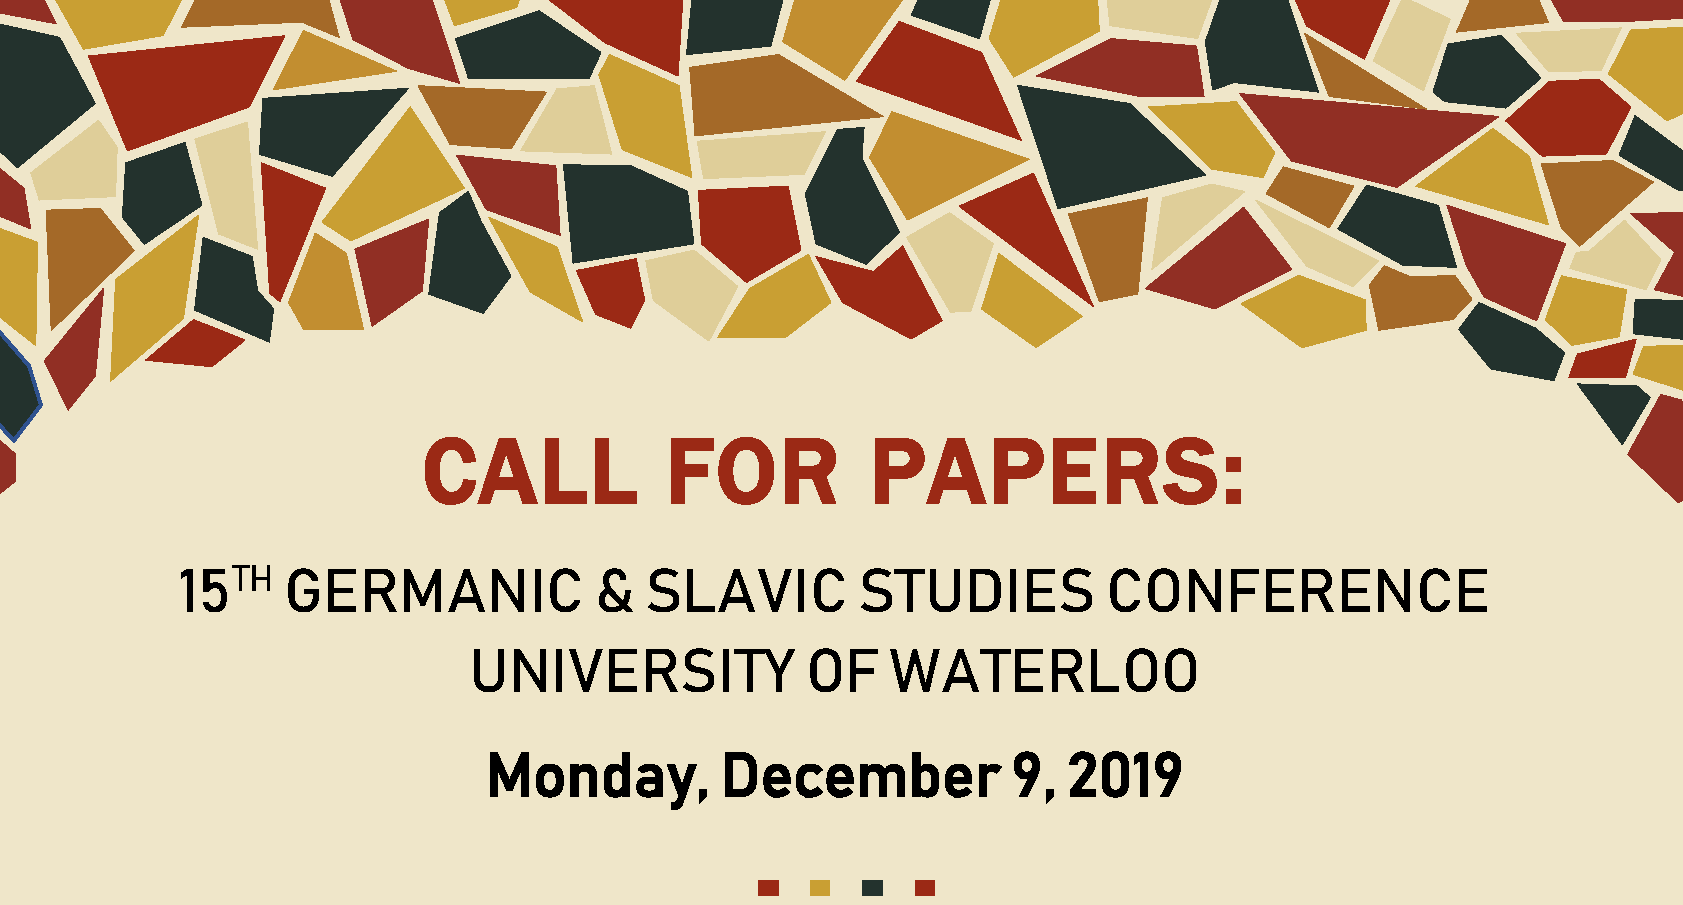 CfP 15th Germanica and Slavic Studies ConferenceUW